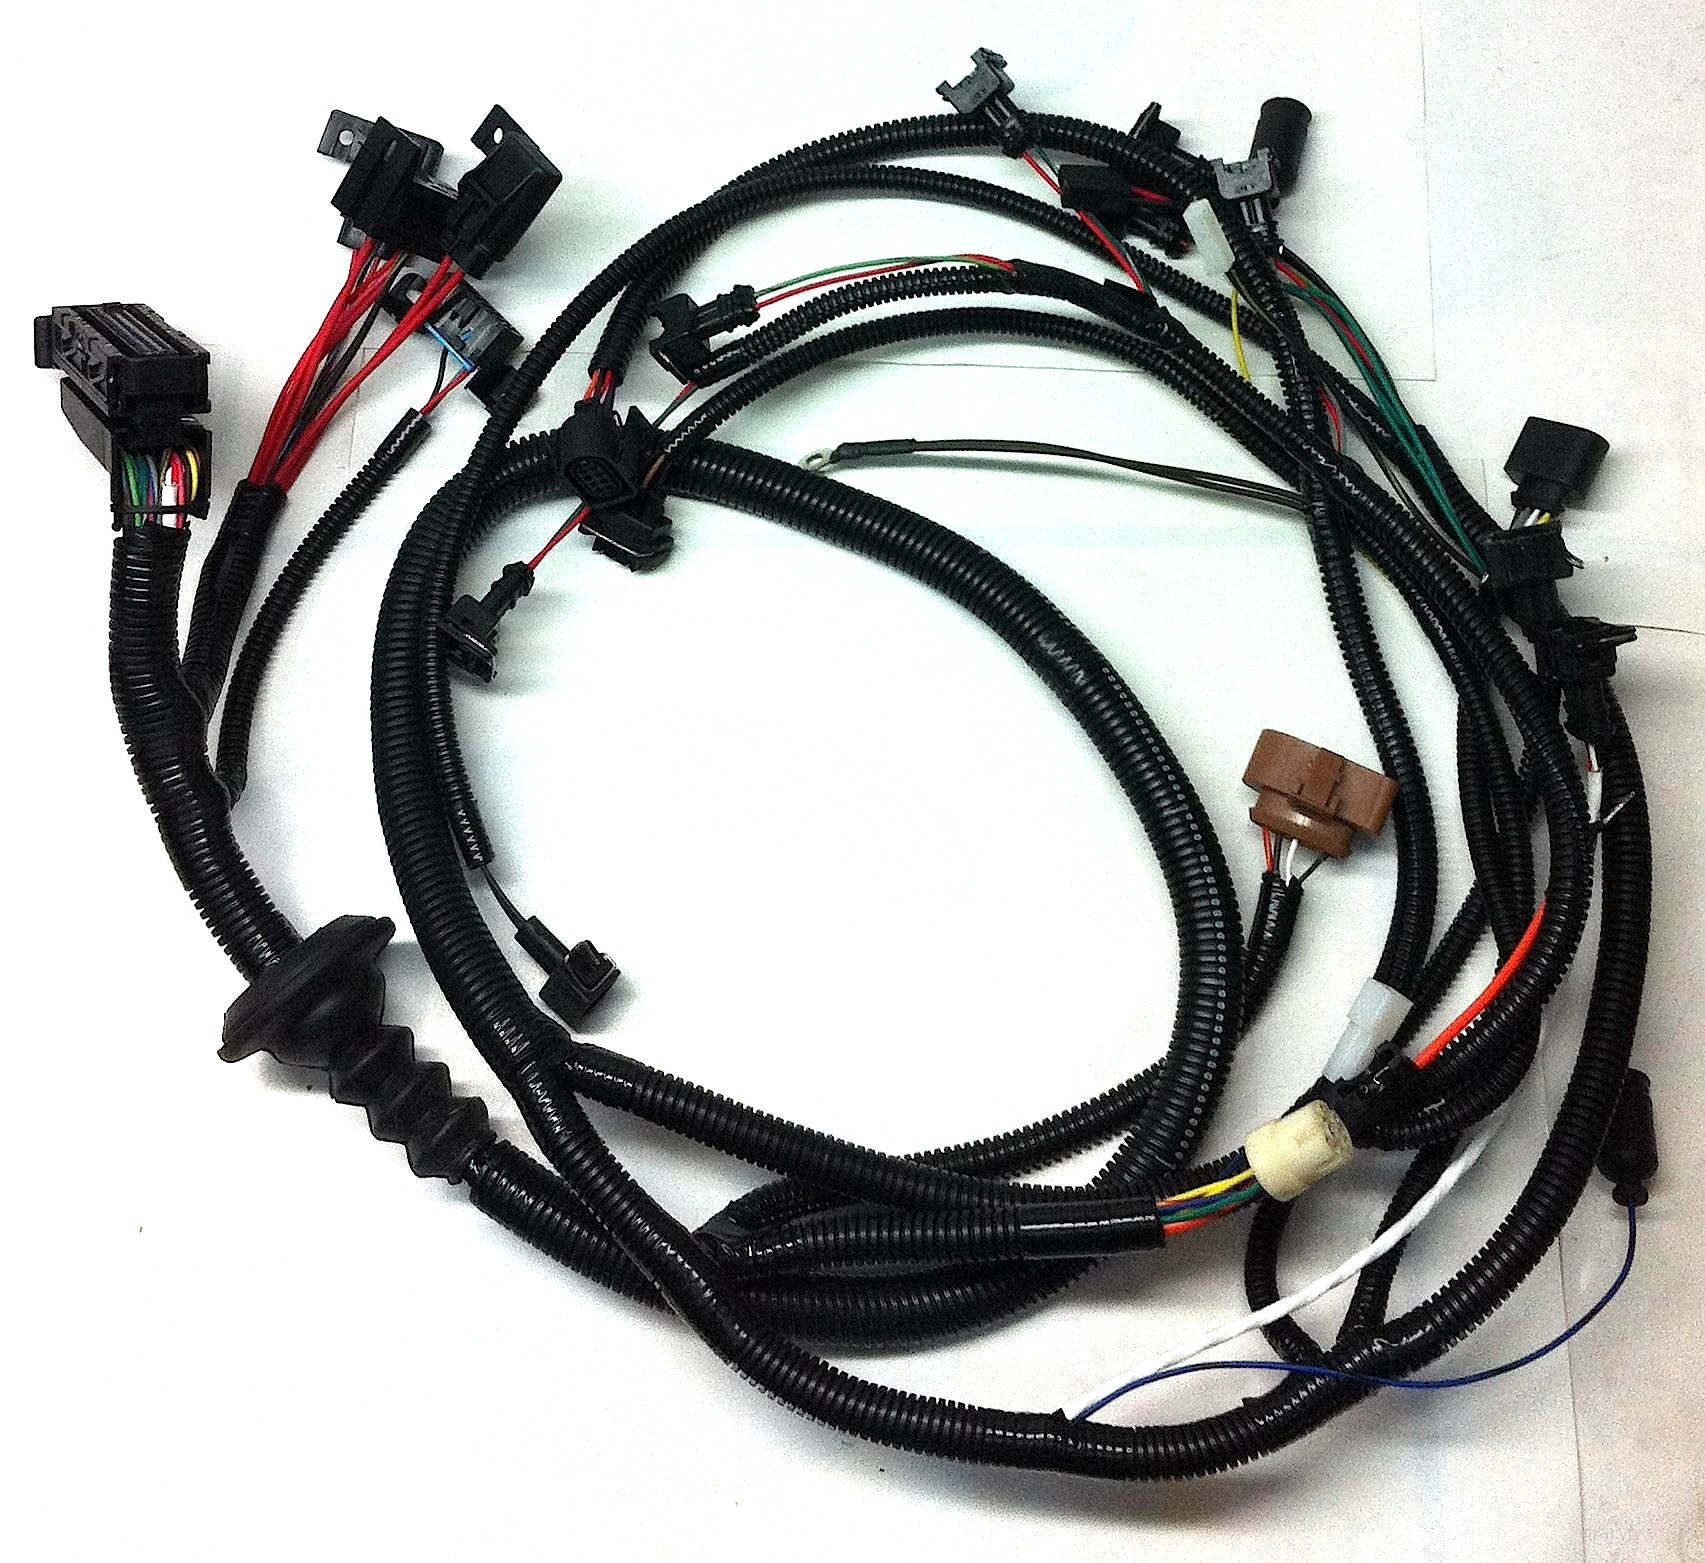 Wiring_Harness_2LR 2lr tiico conversion wiring harness foreign auto & supply, inc car wiring harness at suagrazia.org